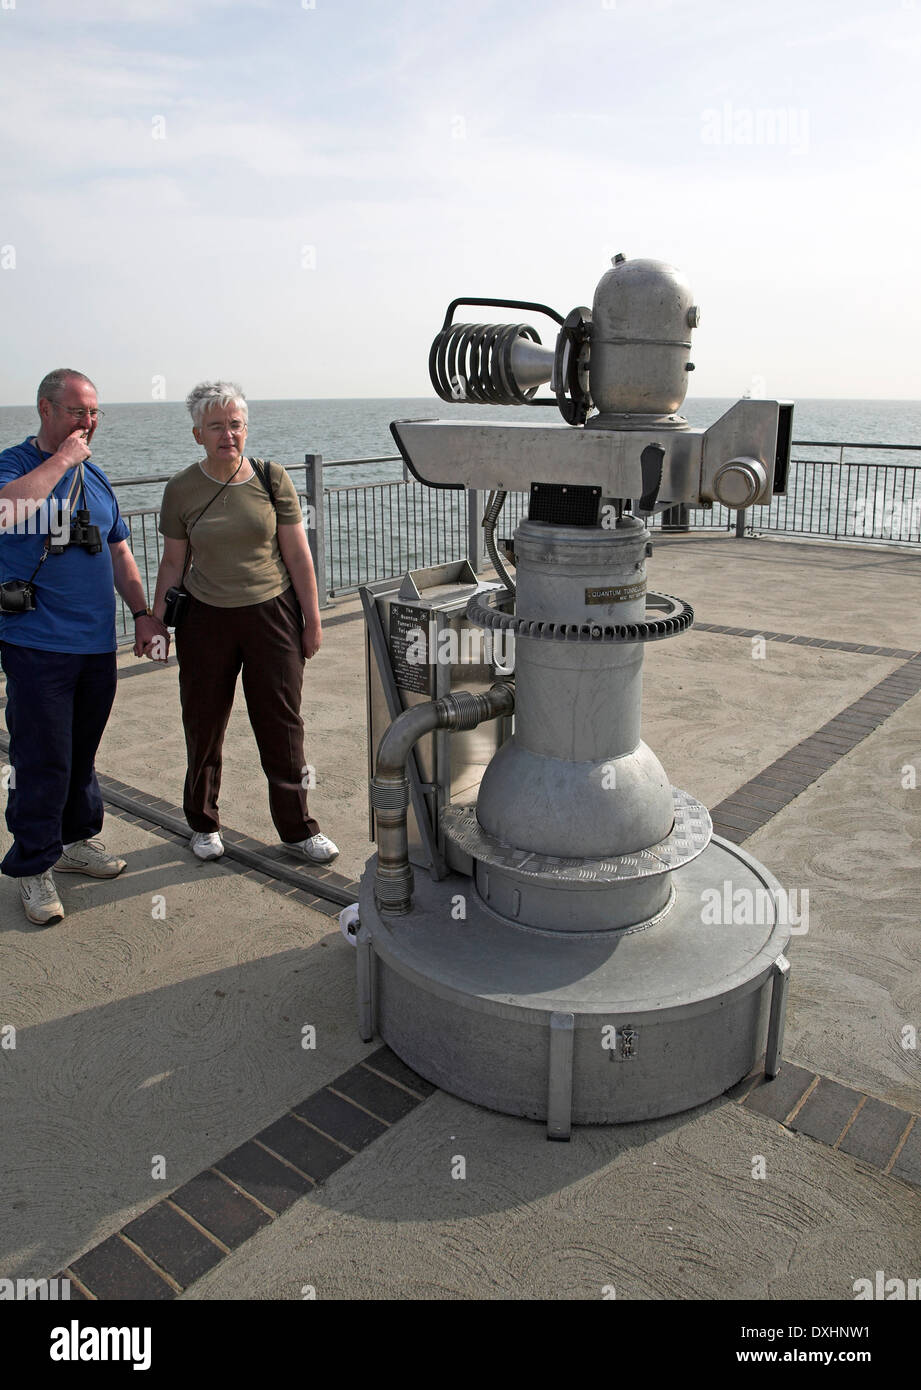 A pretend, joke, fantasy machine called The Quantom Tunnelling Telescope by Tim Hunkin, Southwold pier, Suffolk, England, - Stock Image